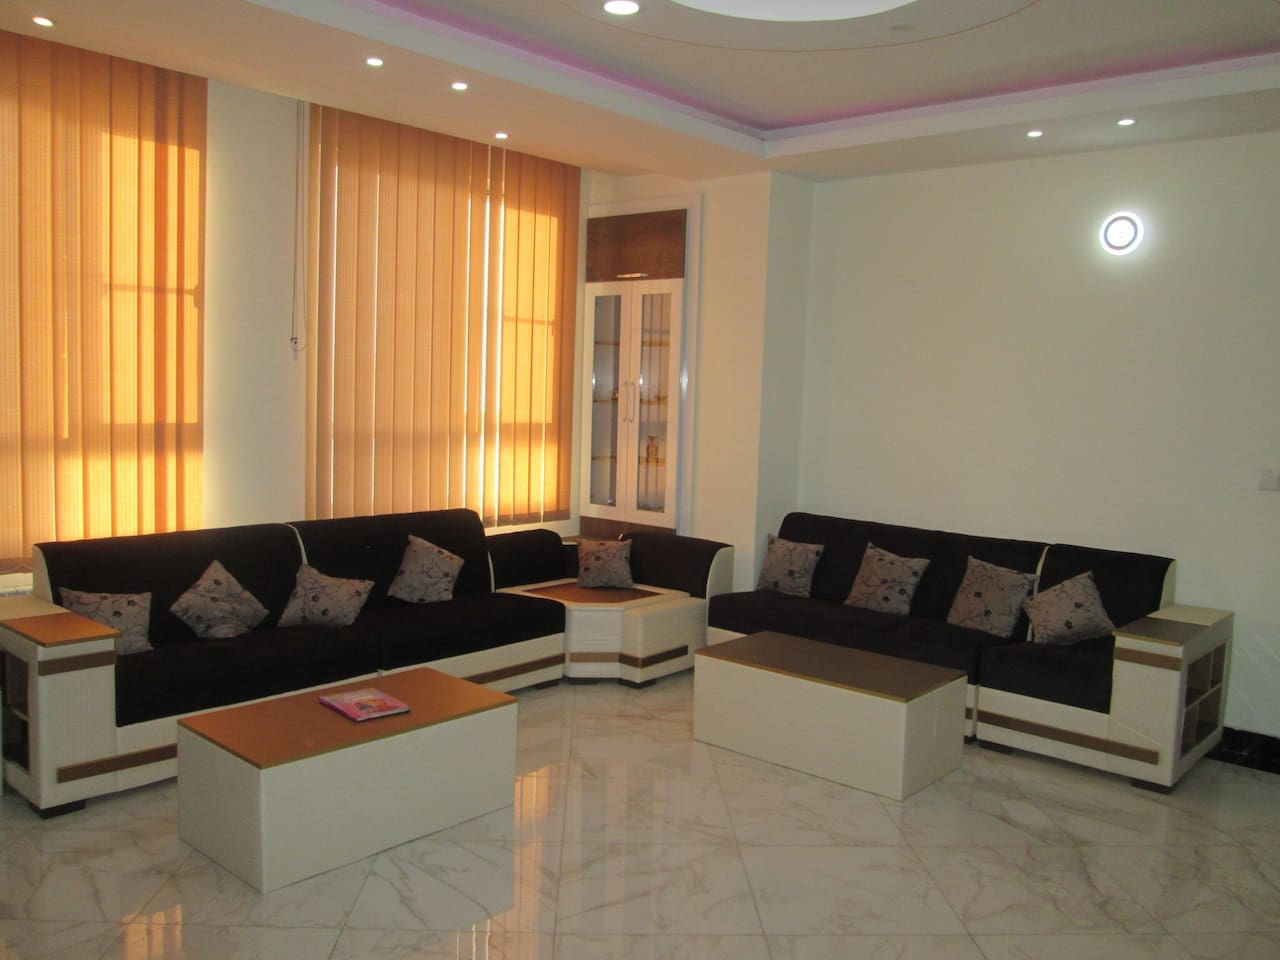 Living room furnished with couches